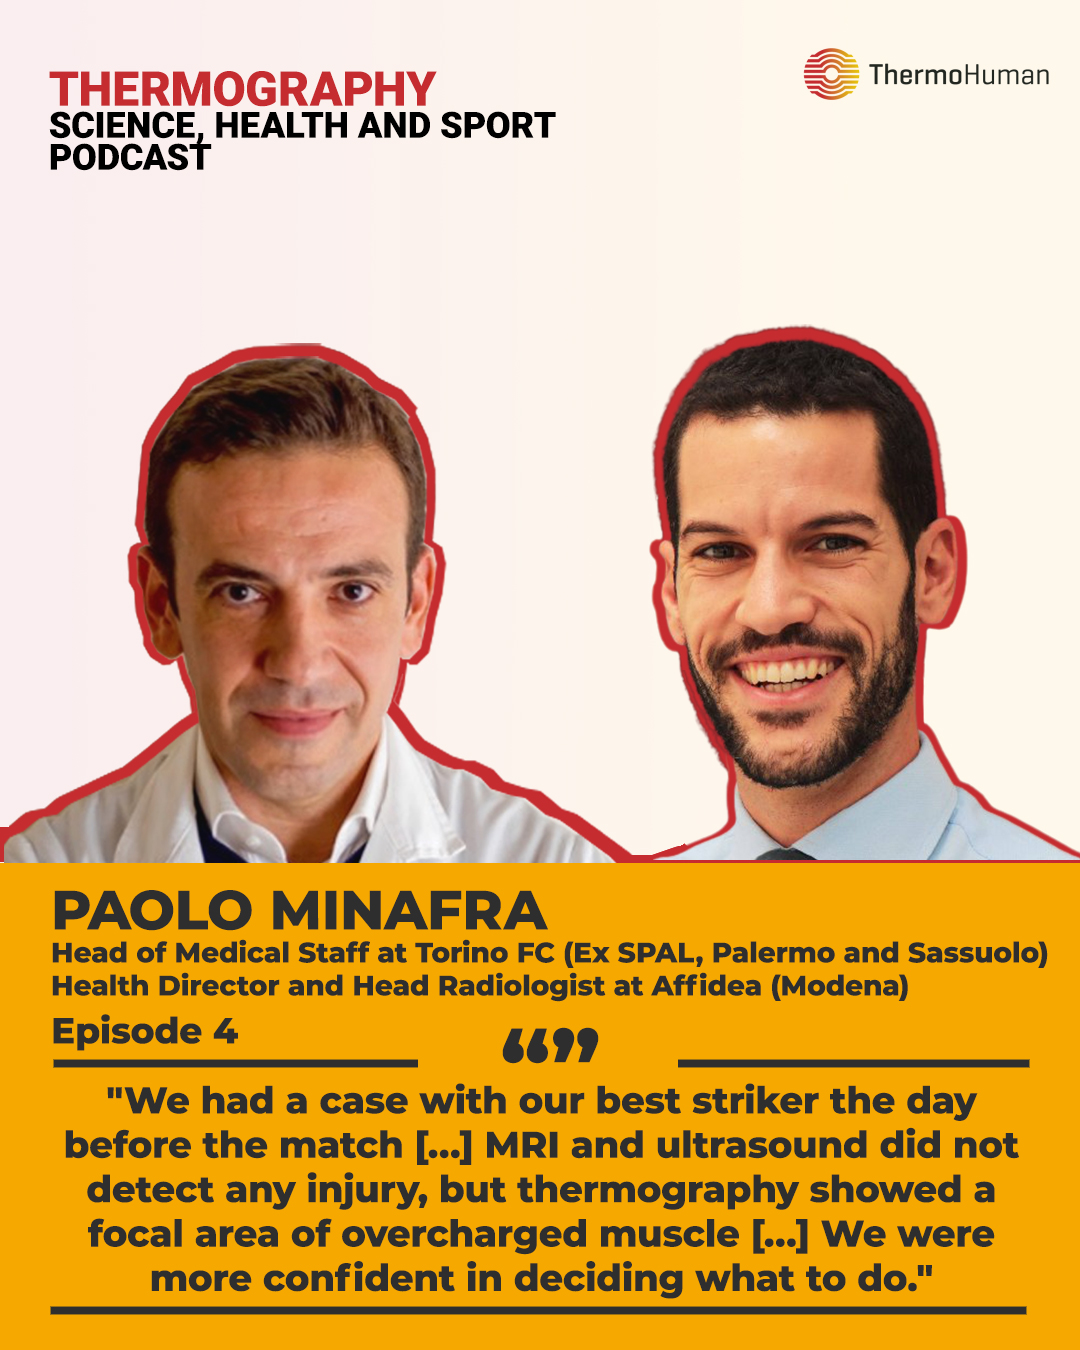 ThermoHuman Podcast 4: Paolo Minafra (Head of Medical Staff at Torino FC and Health Director and Head Radiologist at Affidea – Modena)